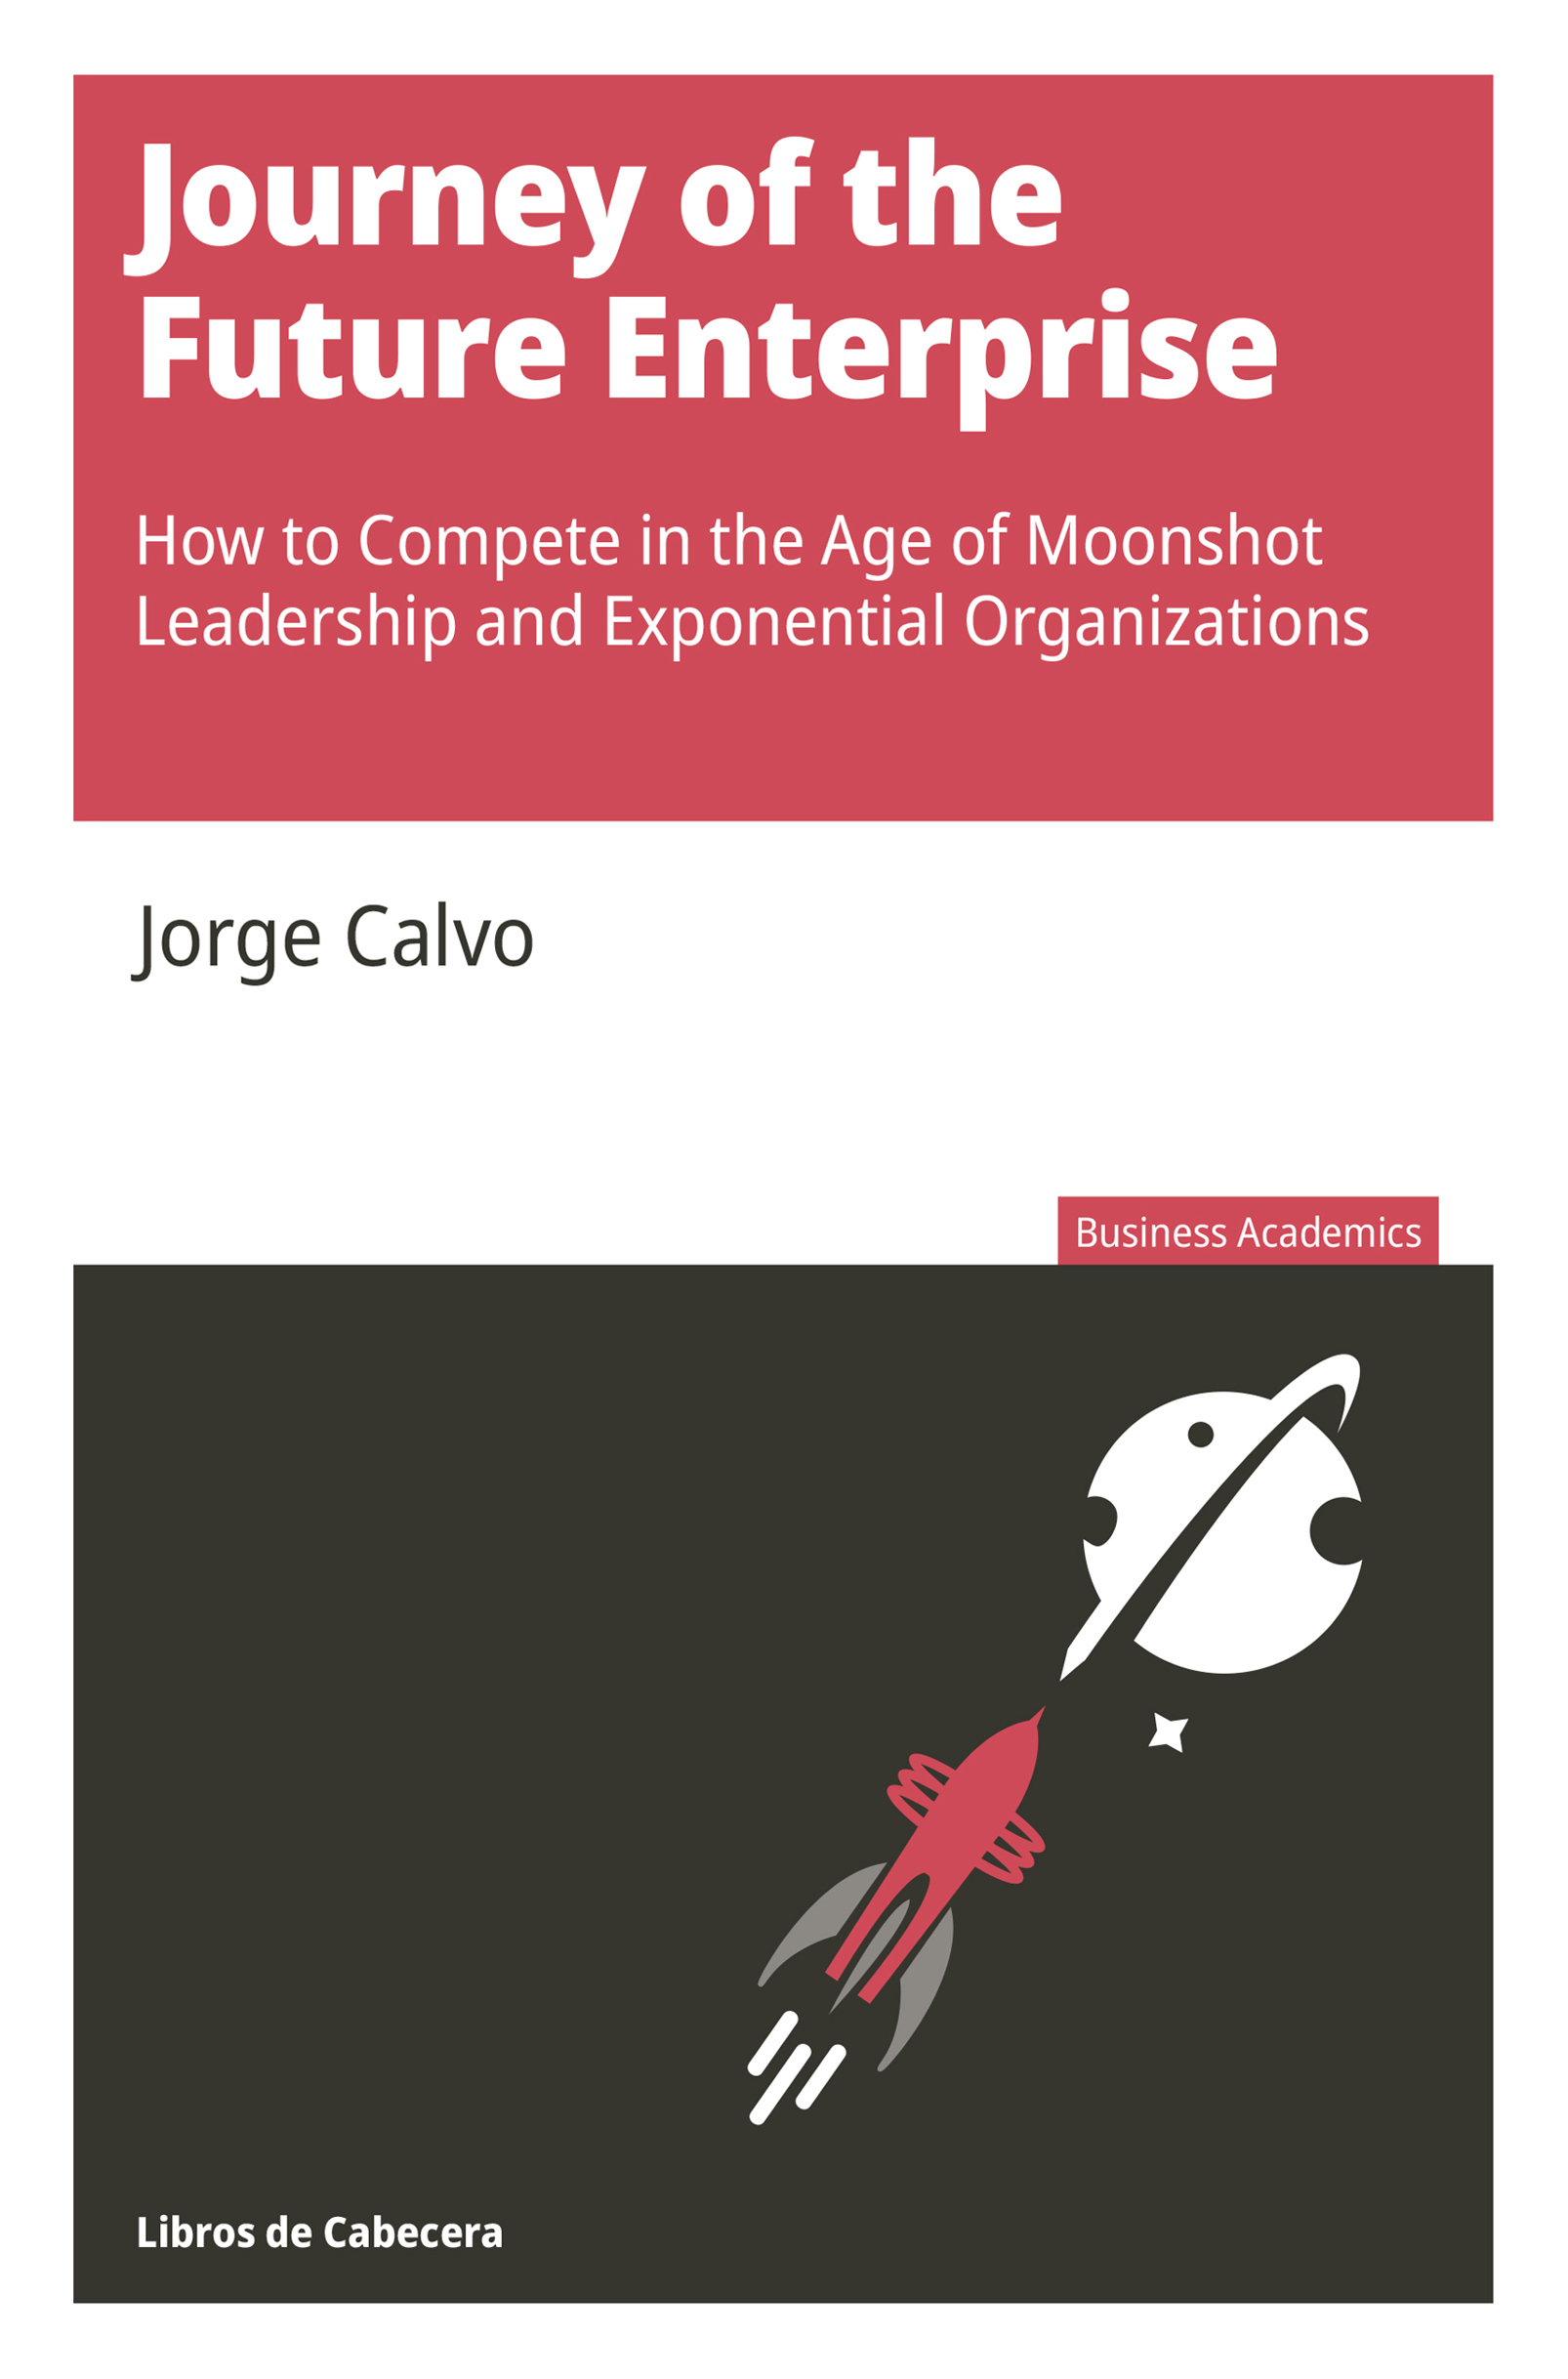 Journey to the Future Enterprise   «How to Compete in the Age of Moonshot Leadership and Exponential Organizations»